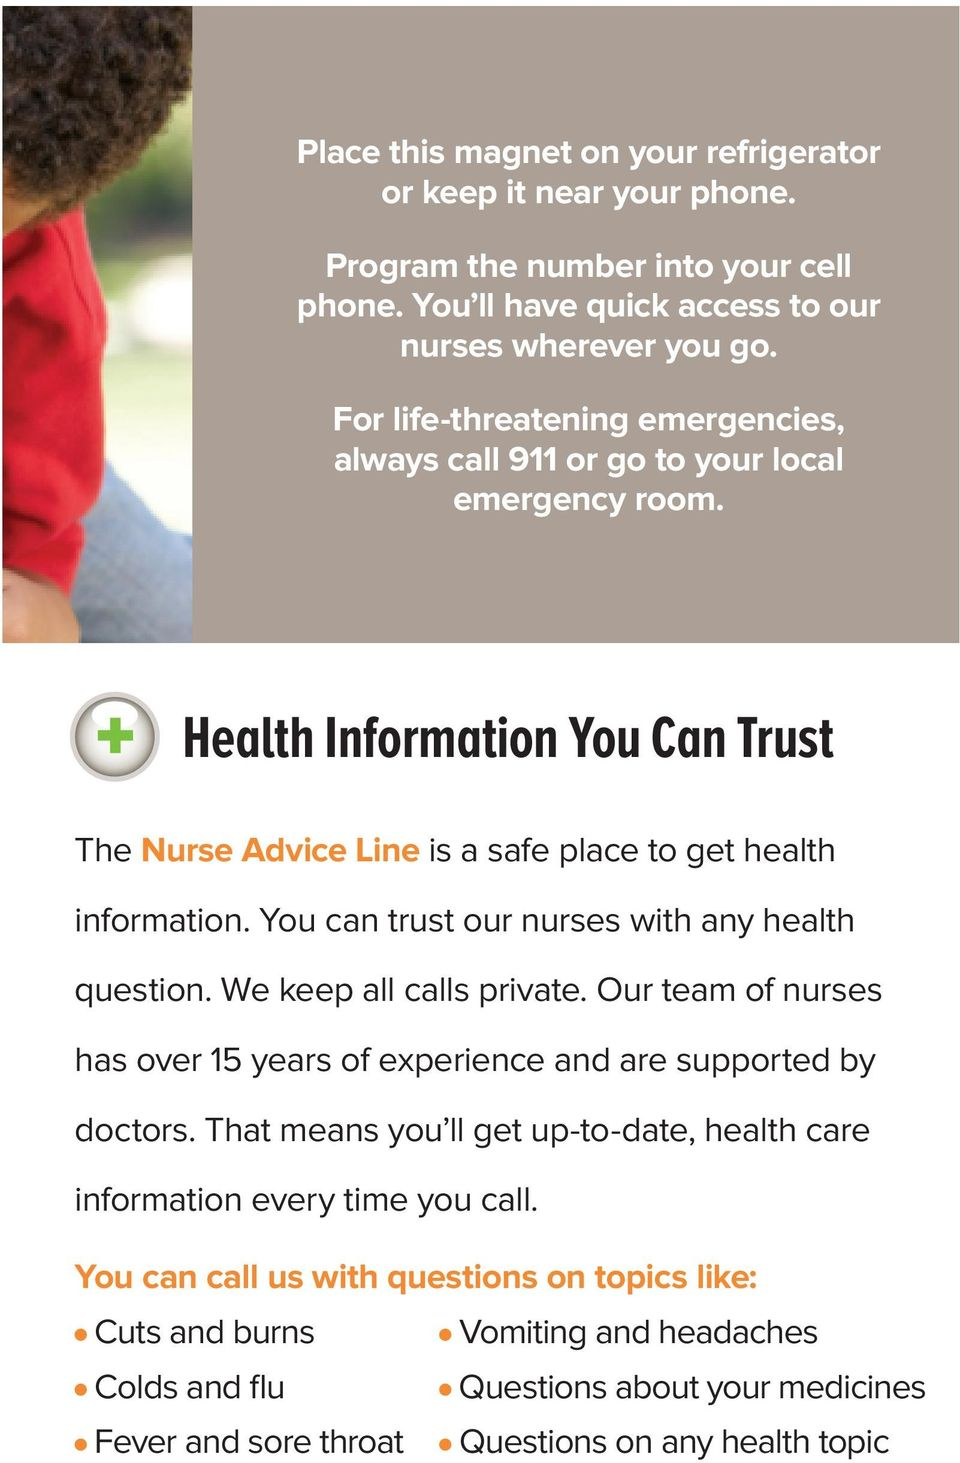 You can trust our nurses with any health question. We keep all calls private. Our team of nurses has over 15 years of experience and are supported by doctors.